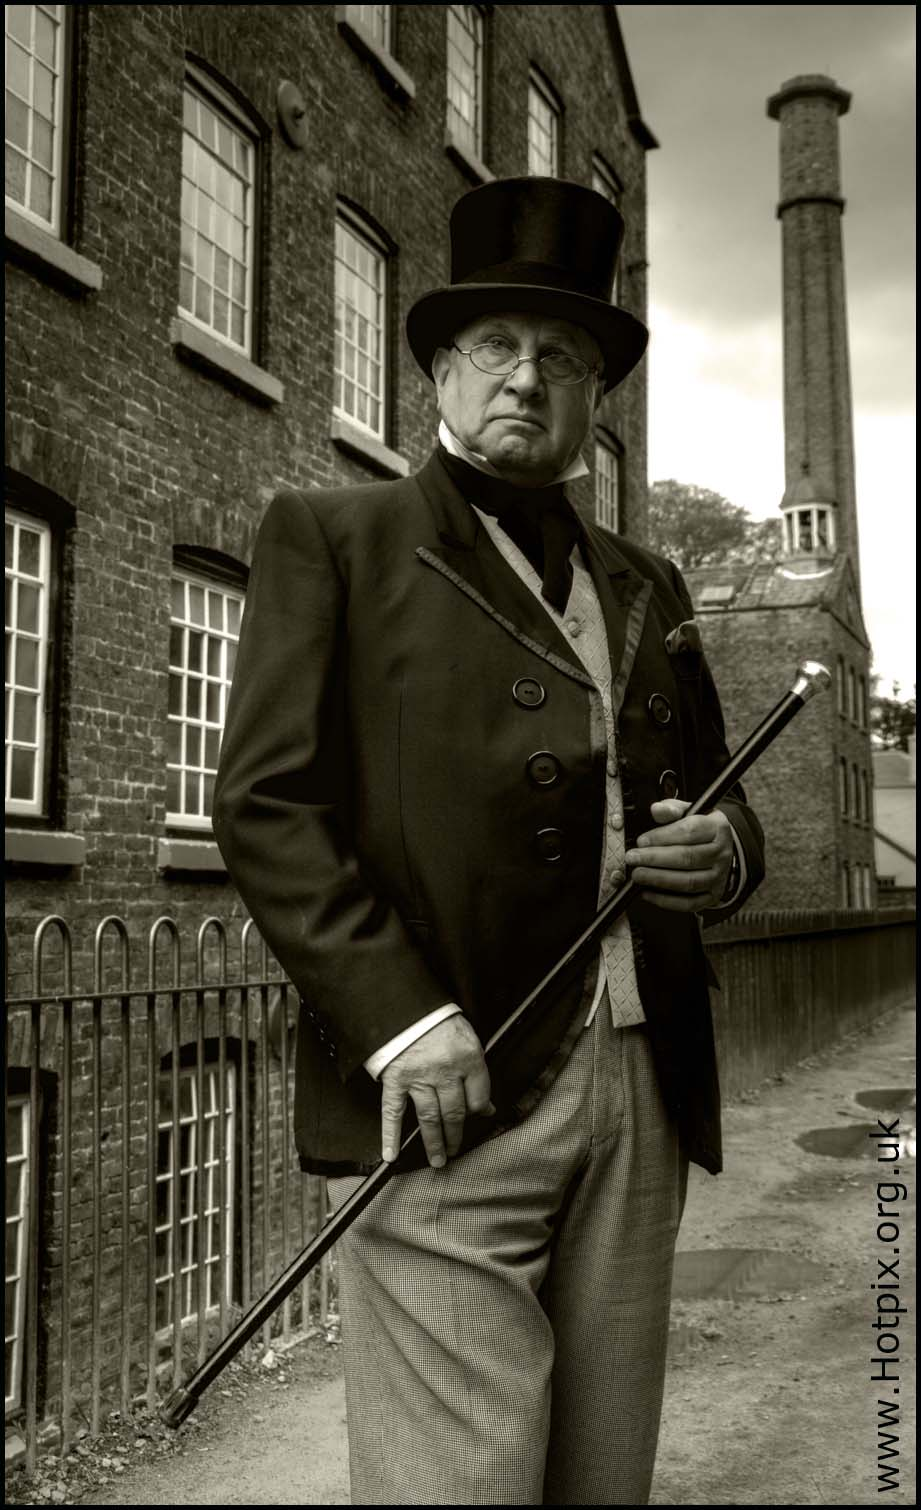 historic,listed,building,buildings,mill,HDR,cotton,king,owner,po historic,portrait,person,period,costume,sepia,mono,b/w,black,while,posed,tonysmith,365project,project365,styal,NT,national,trust,UK,england,cheshire,britain,industry,industrial,factory,victorian,workhouse,work,worker,workers,cottonopolis,tower,chimney,narrative,sex,sexy,HOT PIX,architecture,retro,hotpicks,muchacha,femenina,de,la,mujer,se\u00f1ora,lady,female,woman,girl,\u5973\u6027\u30e1\u30b9\u306e\u5973\u6027\u306e\u5973\u306e\u5b50,\u592b\u4eba\u5973\u6027\u5987\u5973\u5973\u5b69,fille,f\u00e9minine,femme,dame,@hotpixuk